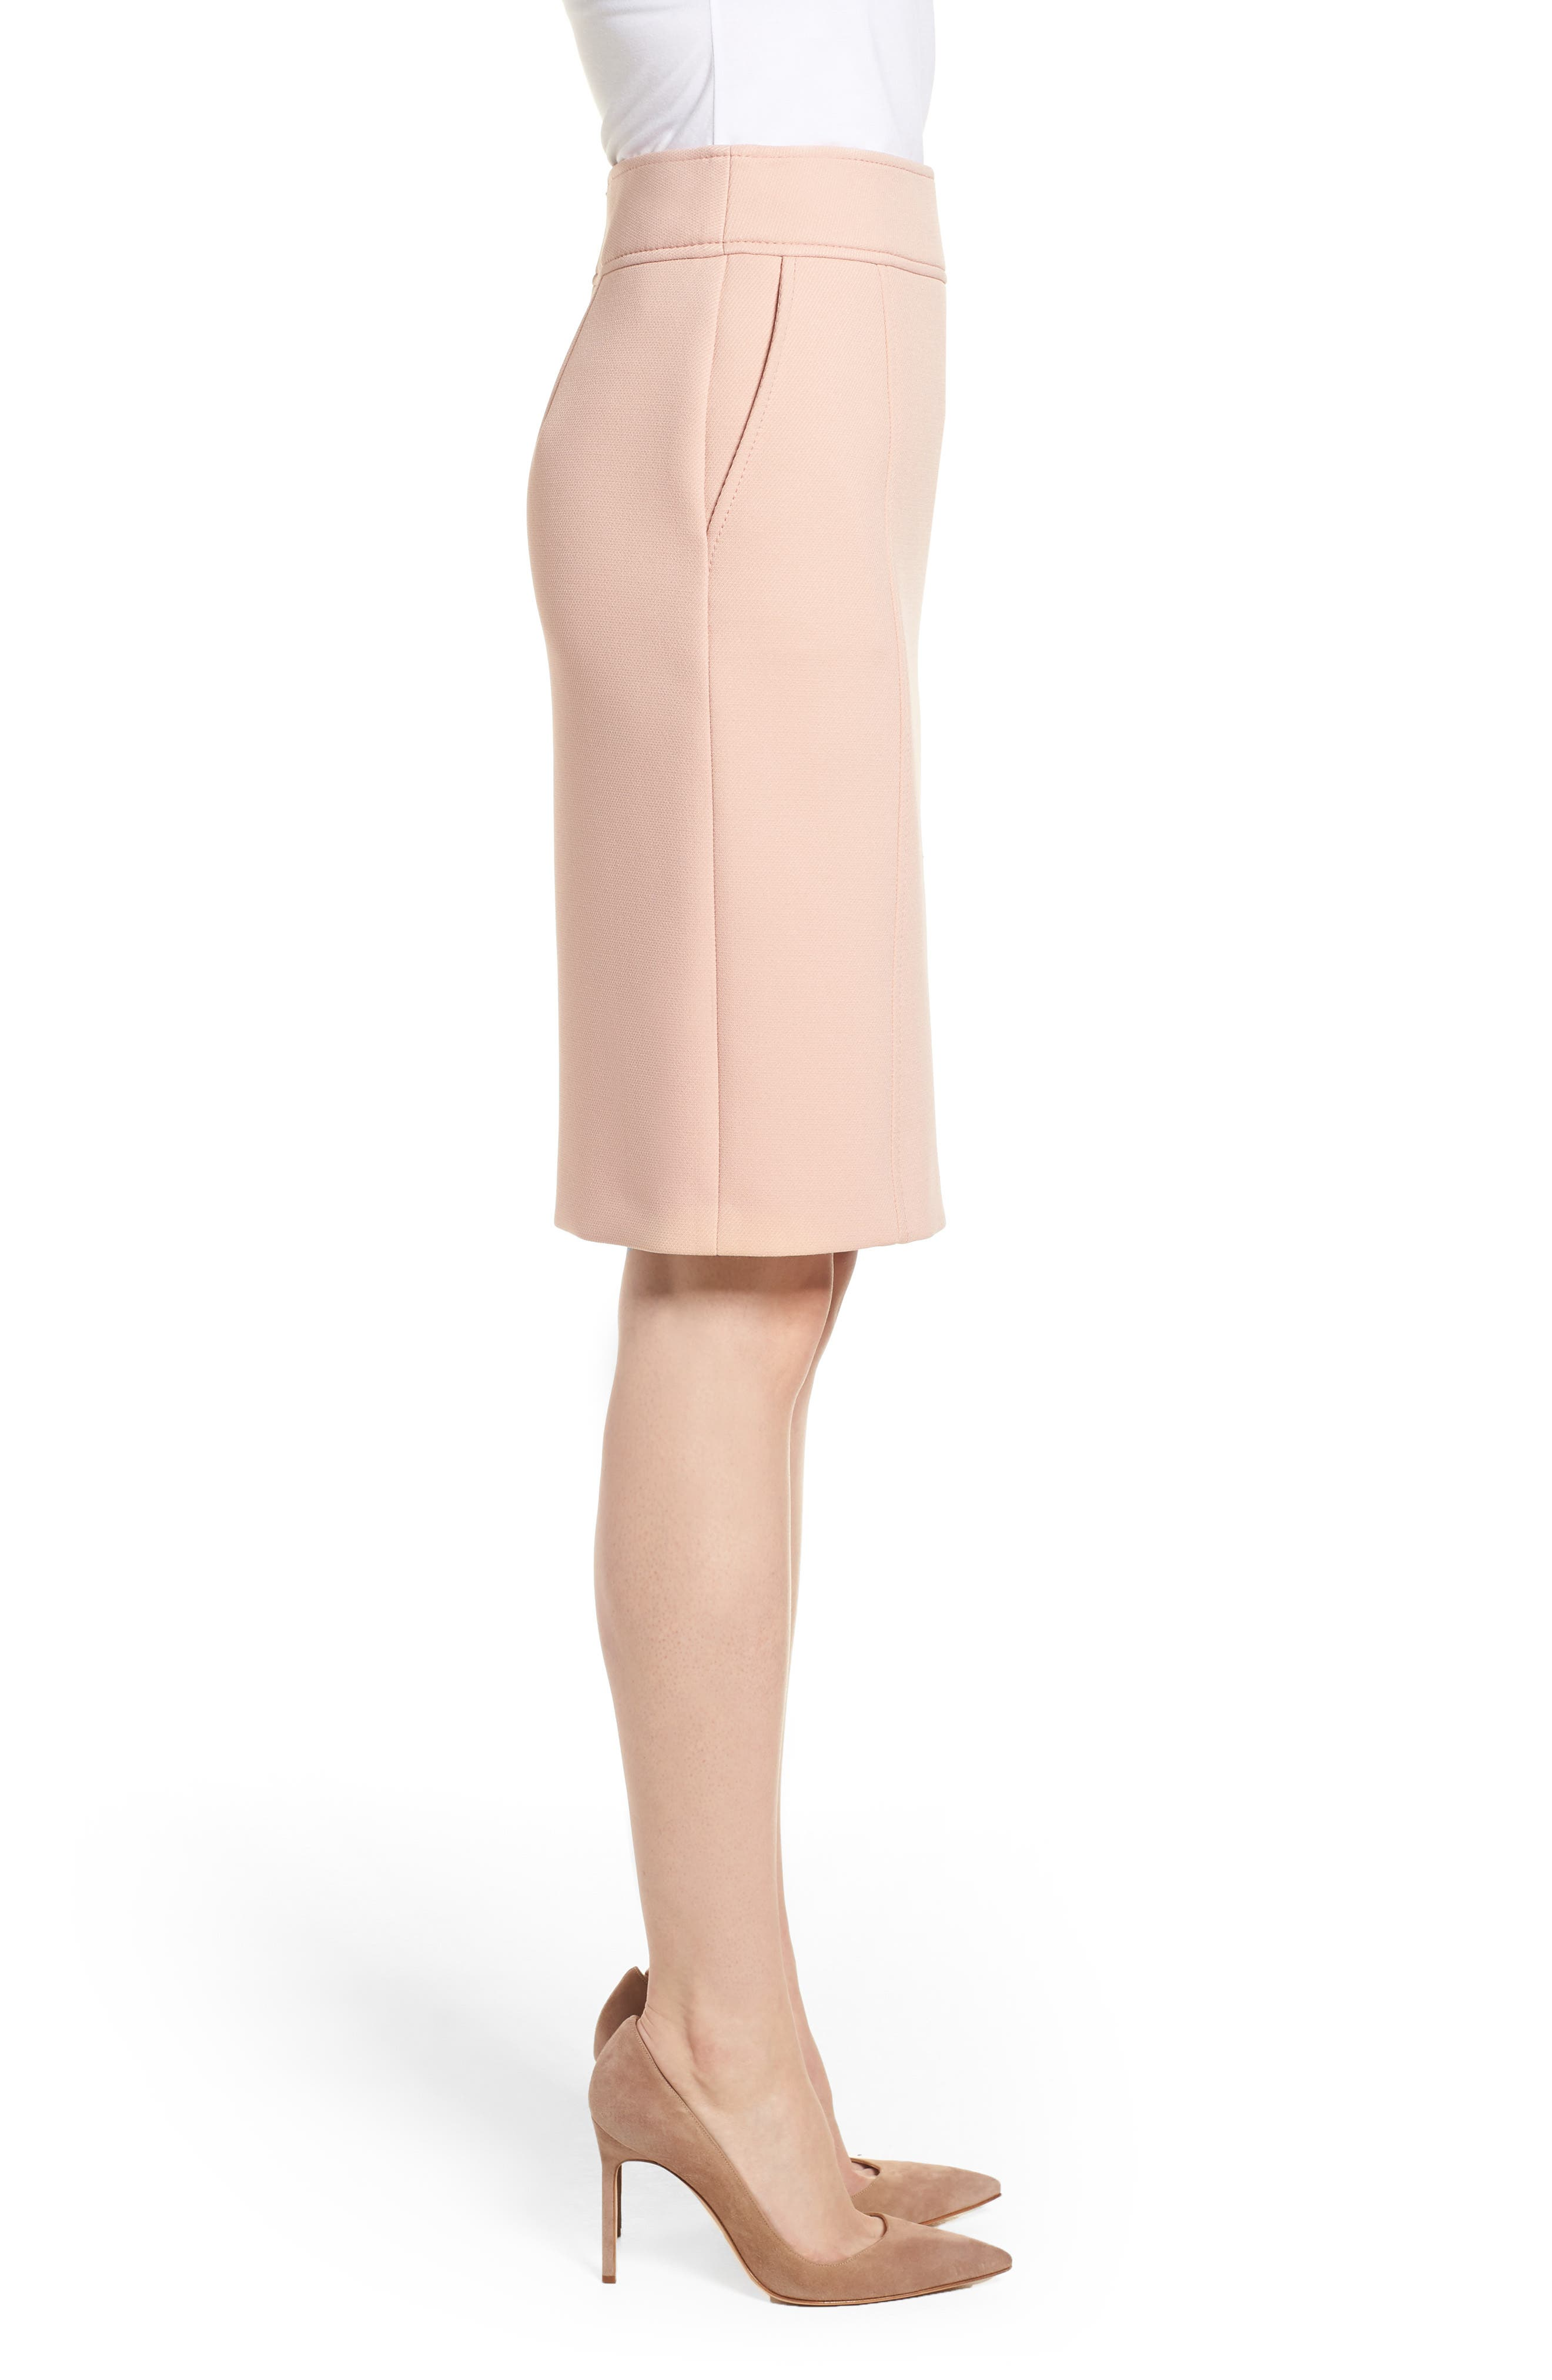 Vuleama Compact Twill Pencil Skirt,                             Alternate thumbnail 3, color,                             682